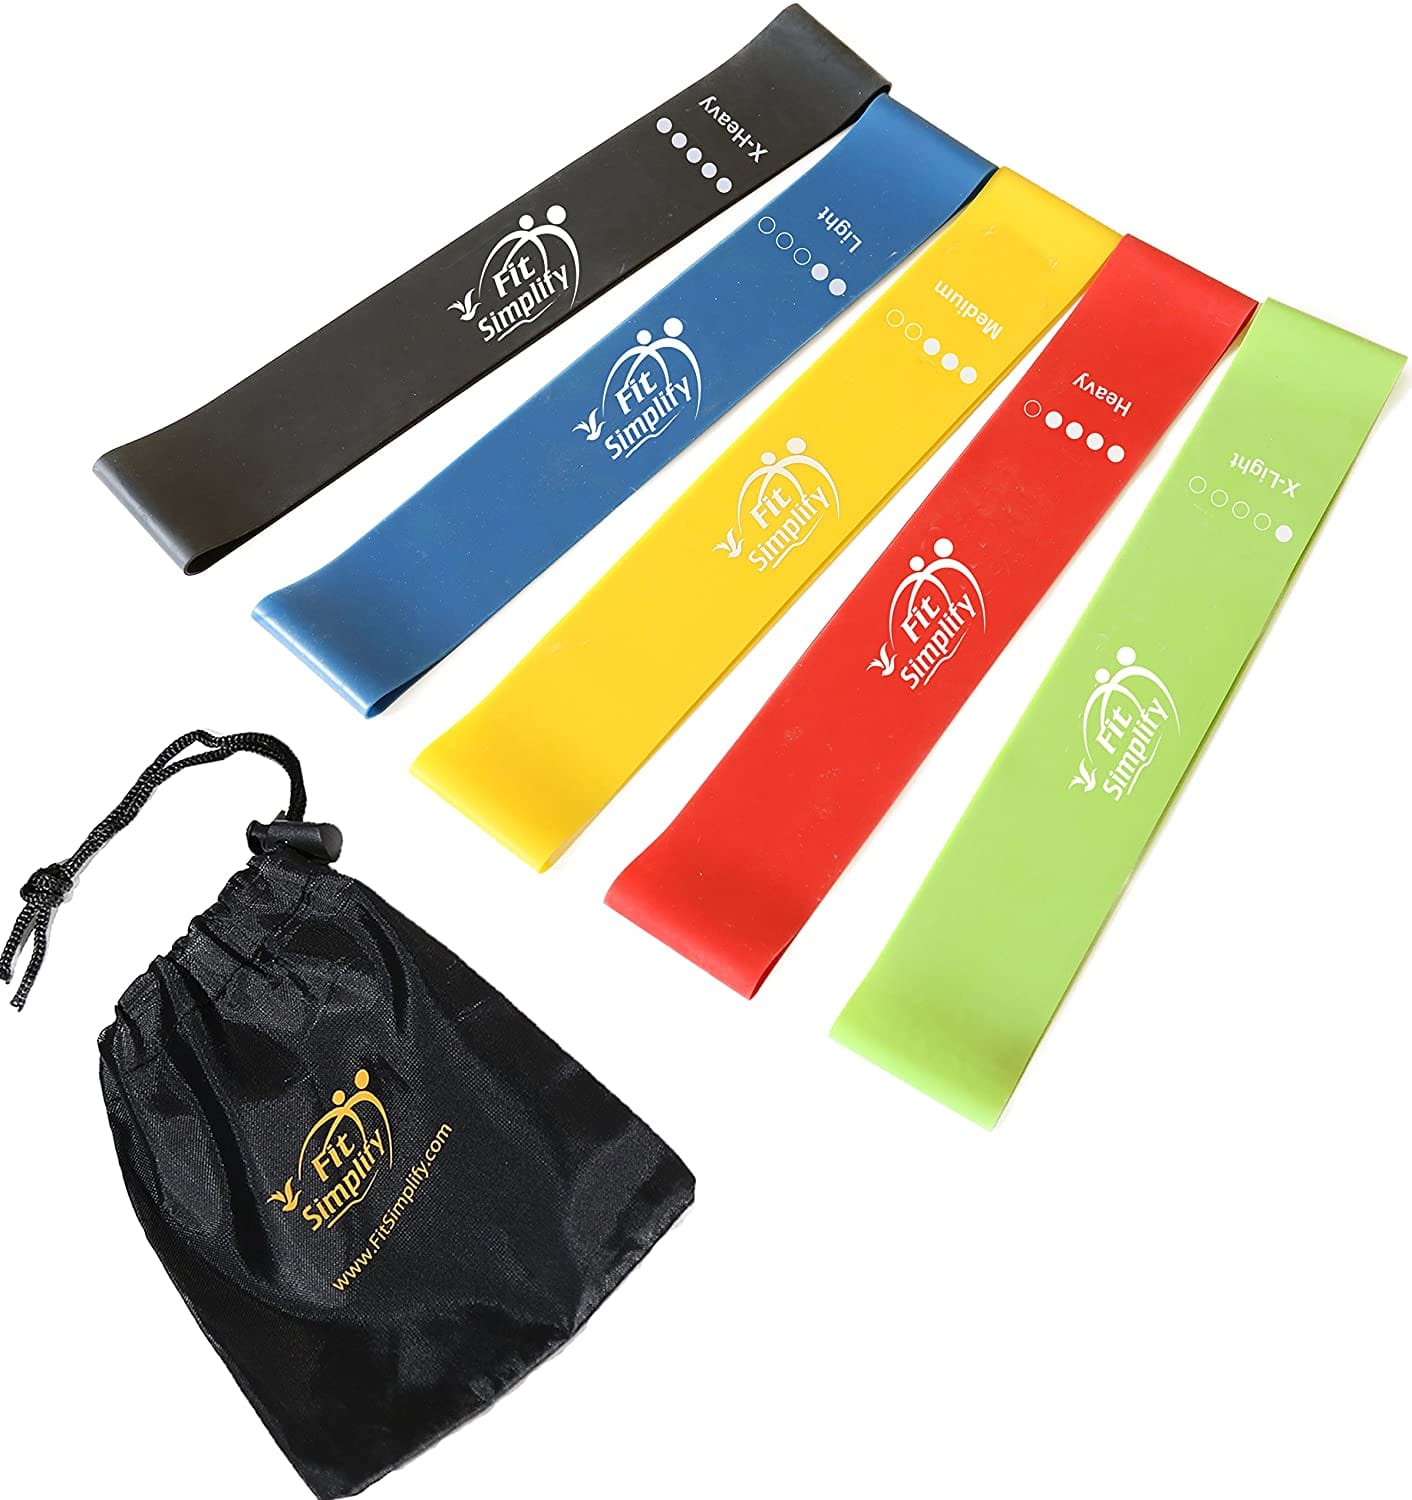 Fit Simplify Resistance Loop Exercise Bands for Home Fitness, Stretching, Strength Training, Physical Therapy, Workout Bands, Pilates Flexbands, Set of 5 $11.95